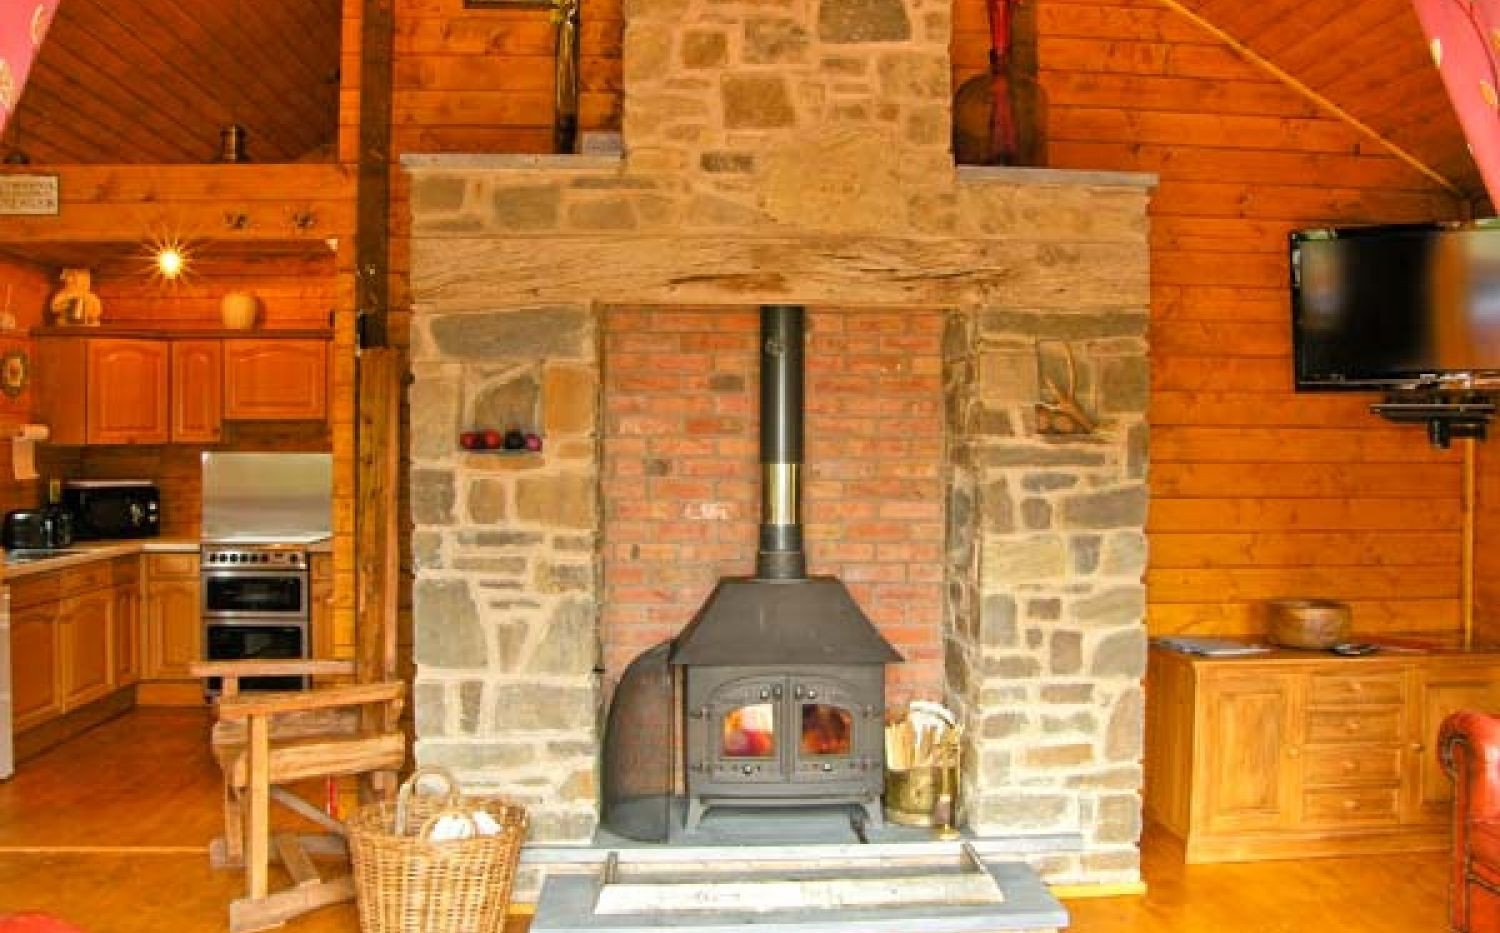 log cabin fire place.jpg